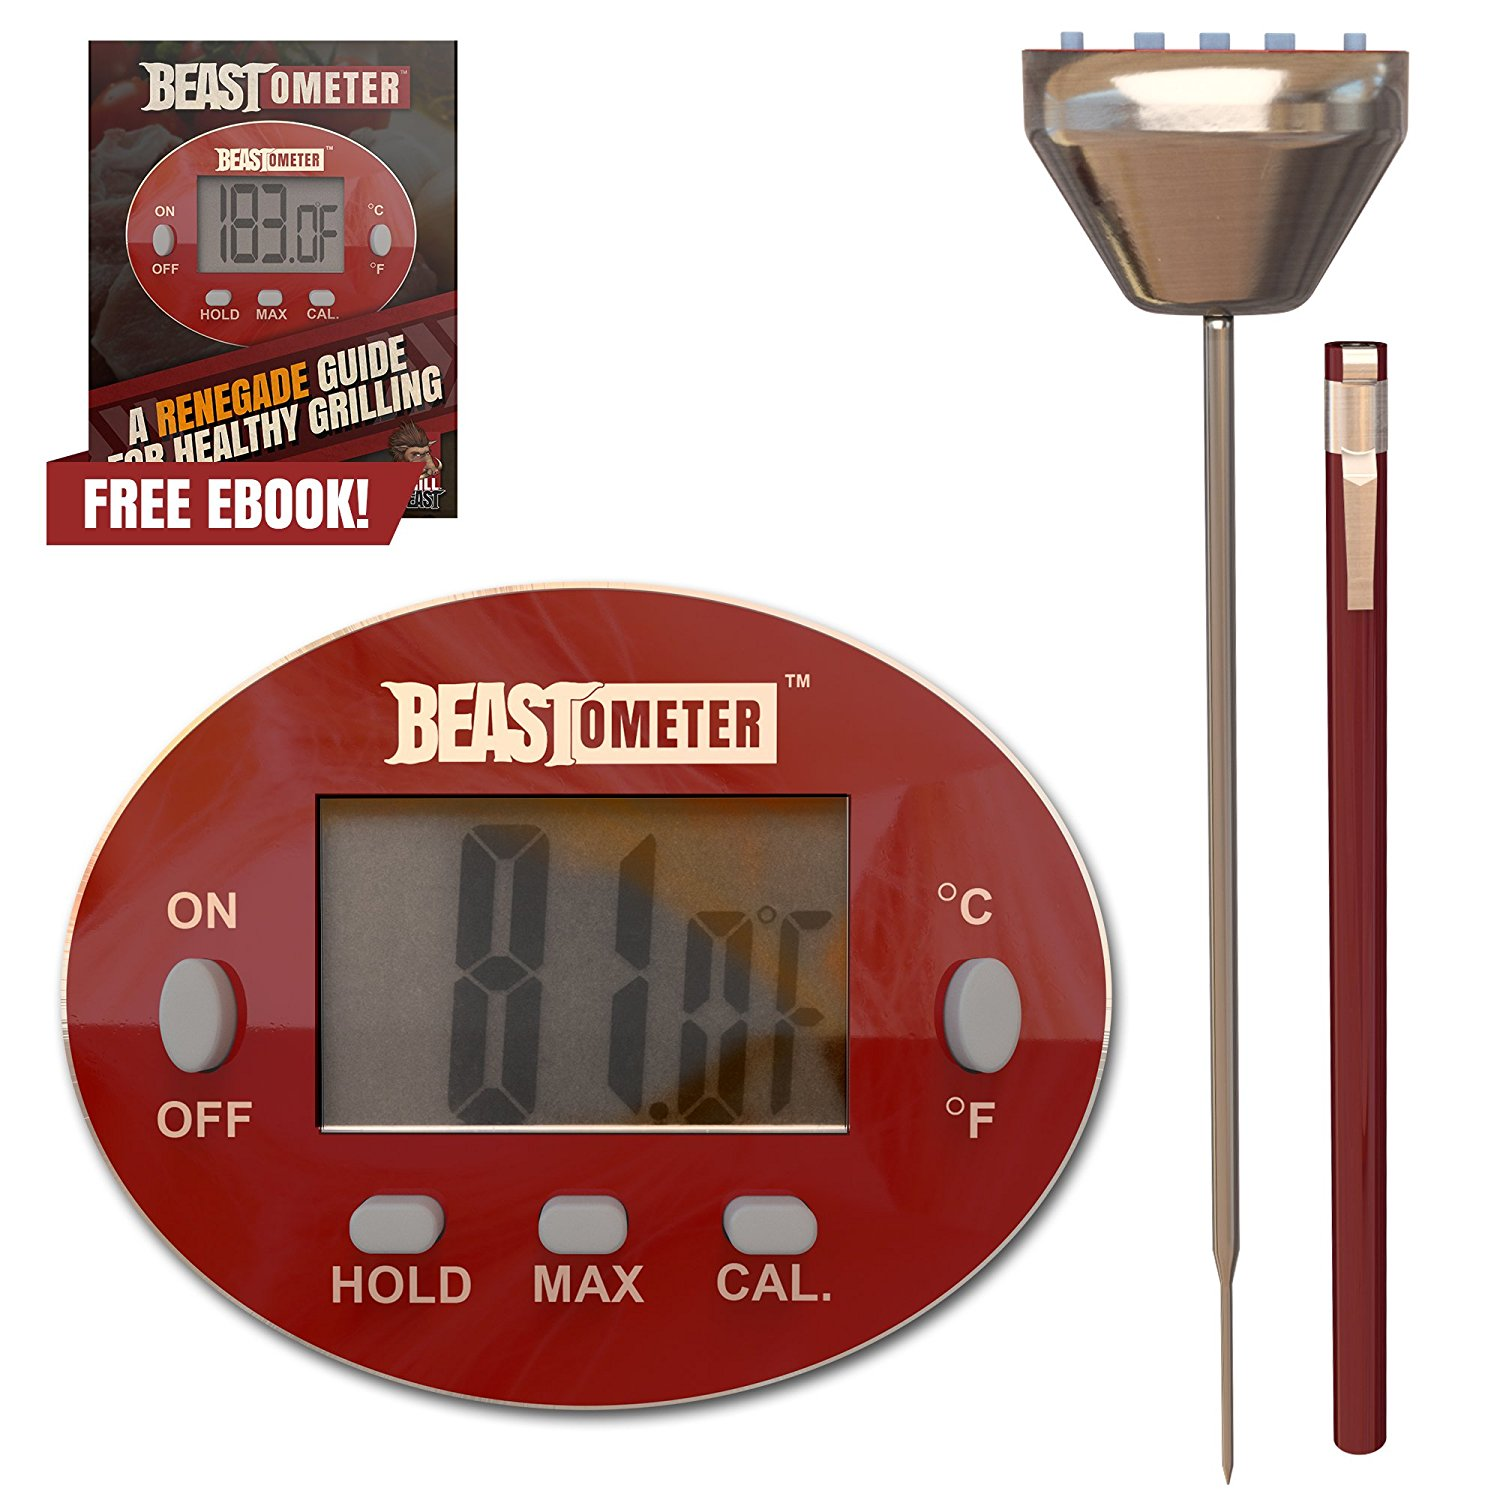 Grill Beast Digital Meat Thermometer - BBQ - Cooking - Instant Read with Stainless Steel Casing & Probe